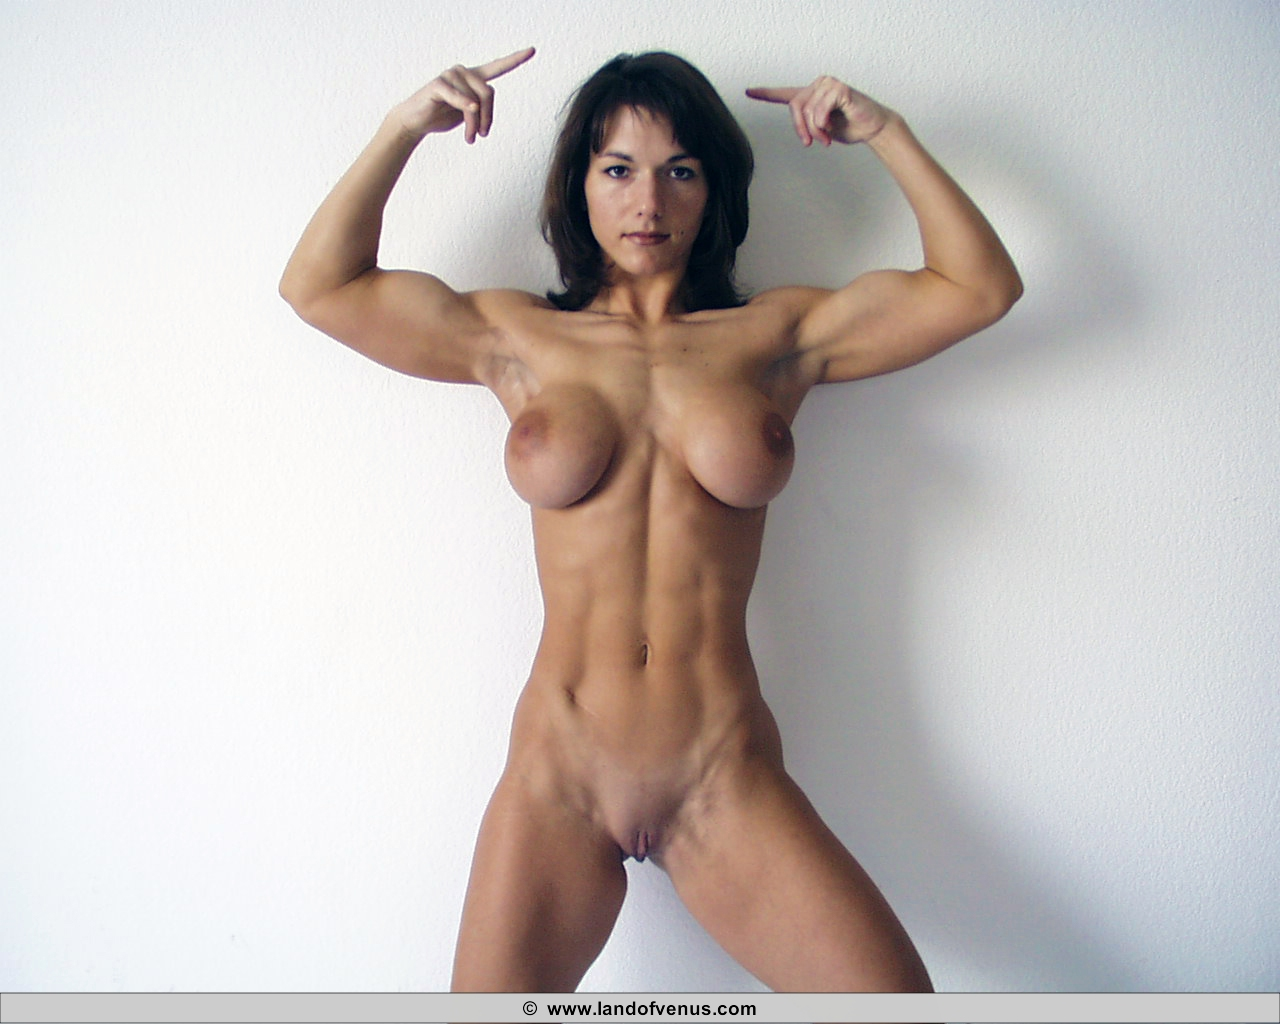 Nude Female Bodybuilders Videos 8